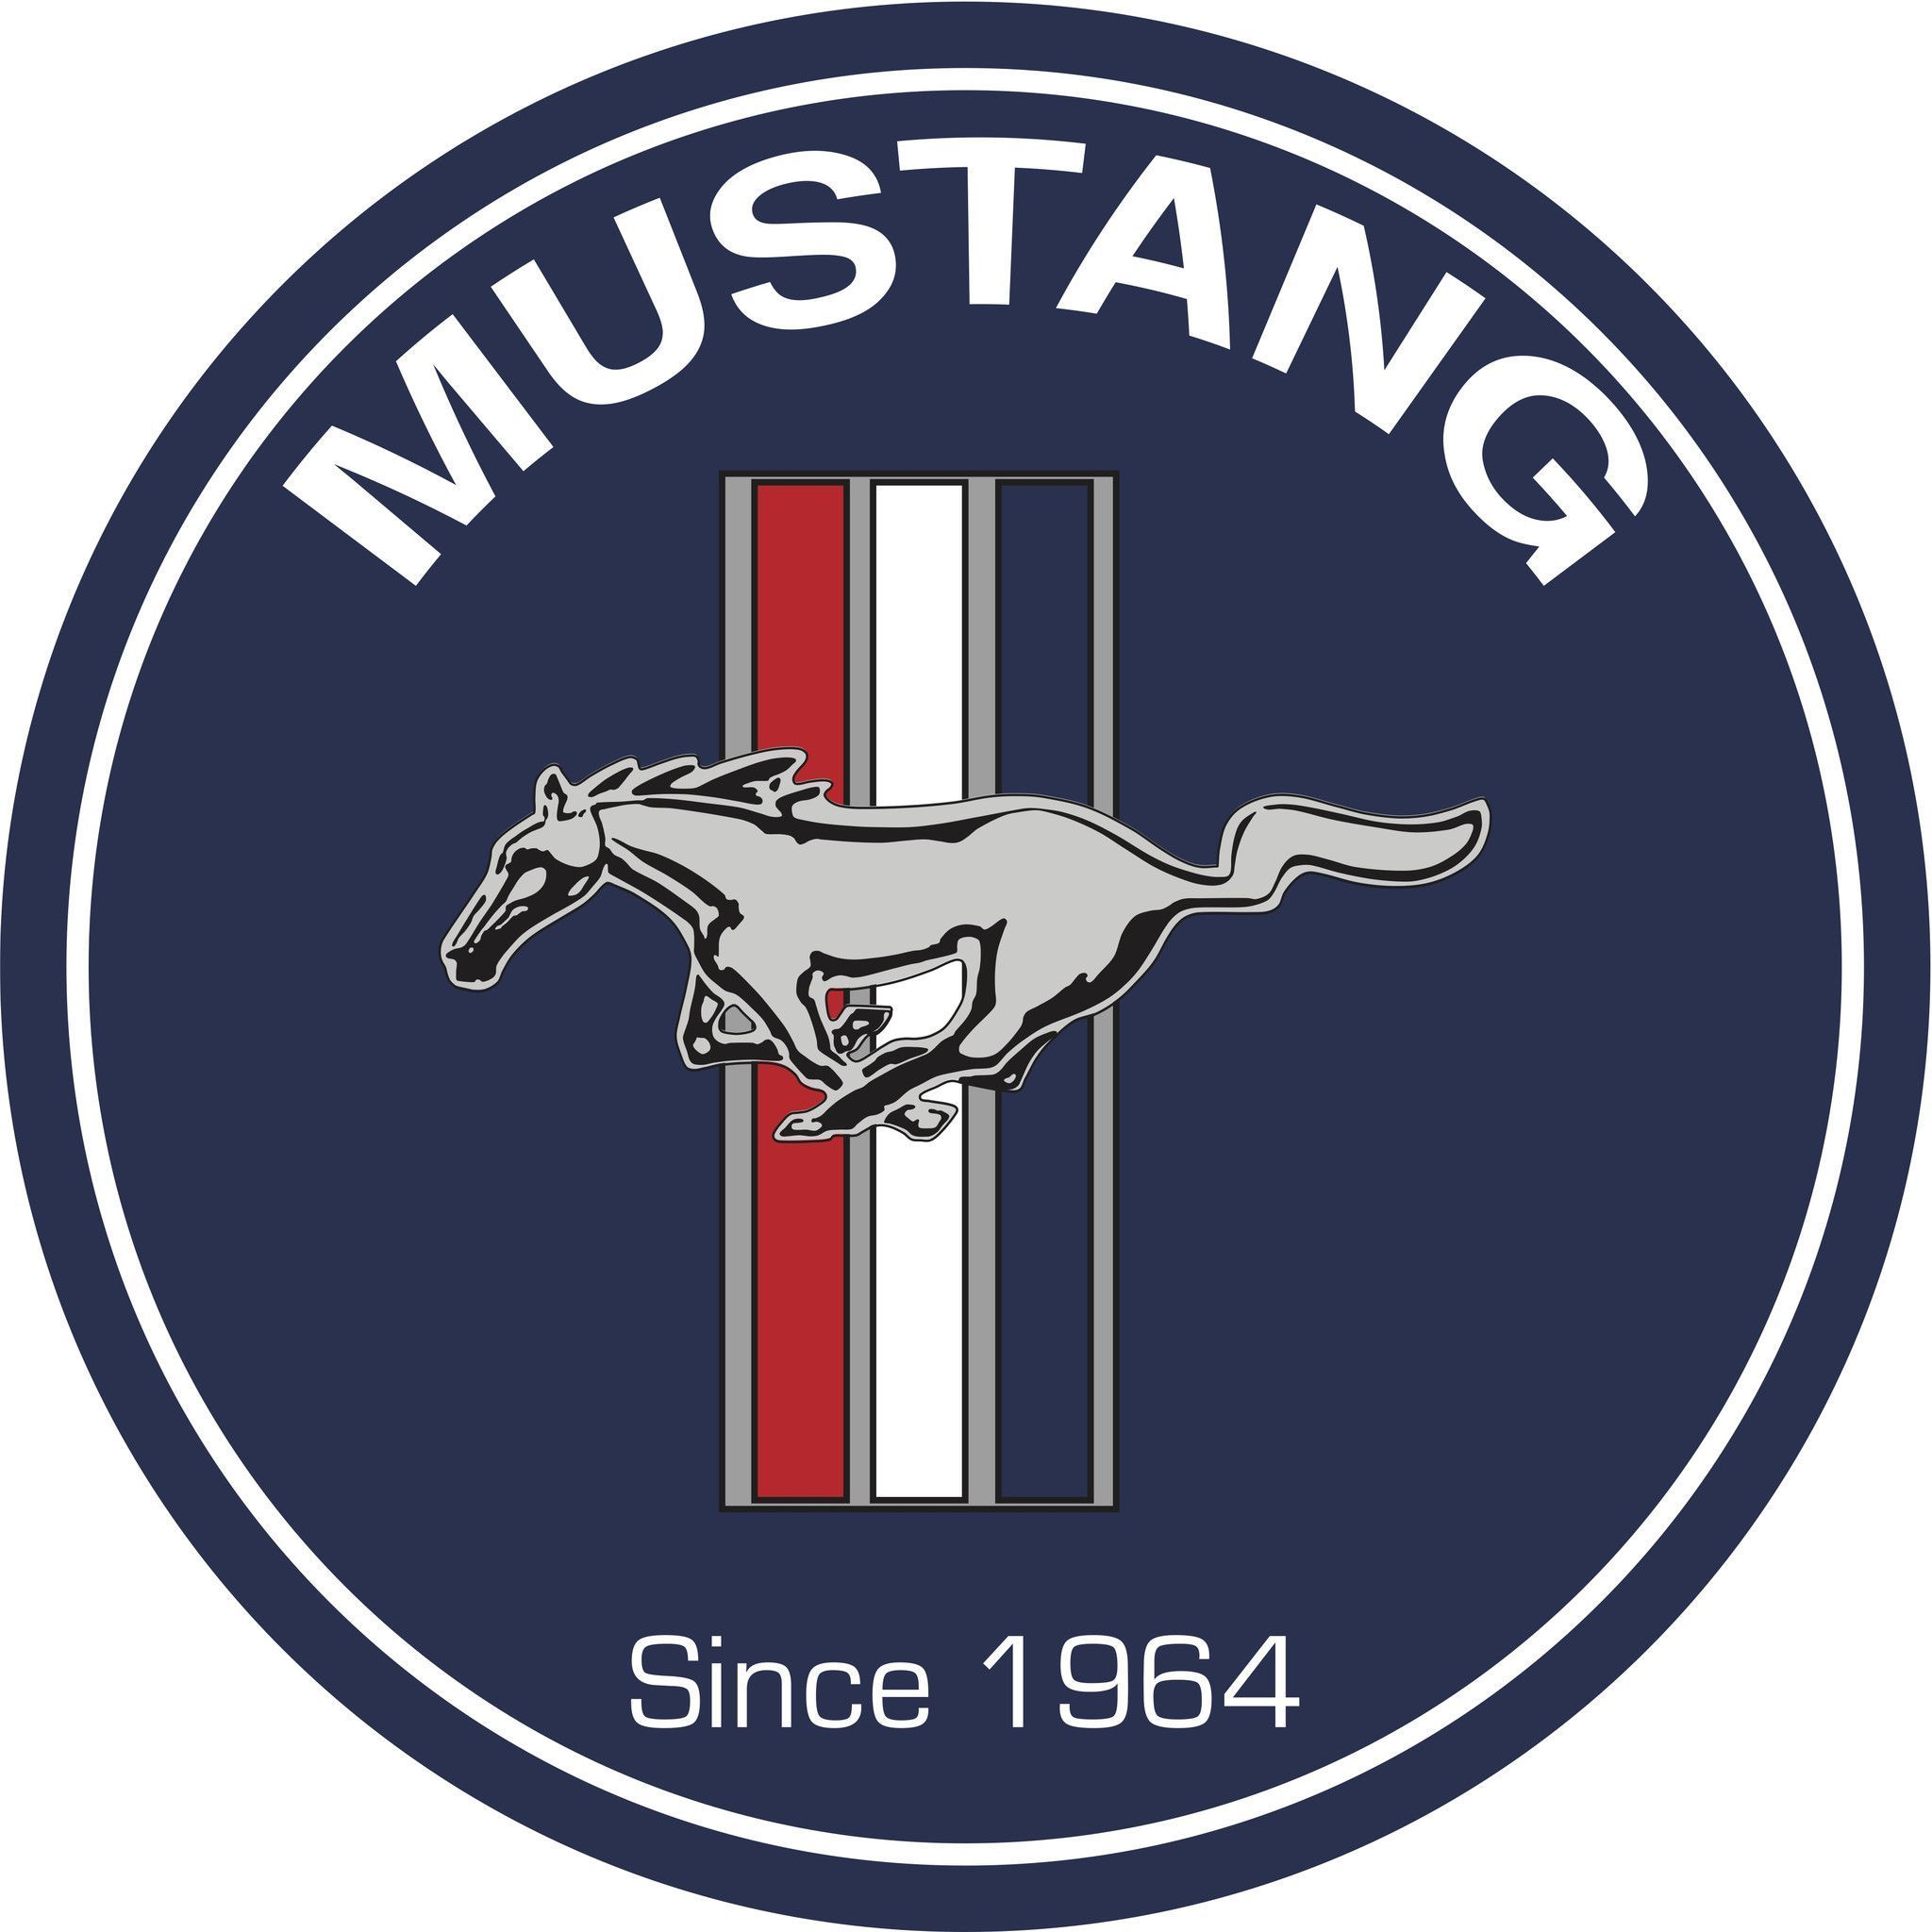 7 diameter metal sign classic ford mustang logo perfect. Black Bedroom Furniture Sets. Home Design Ideas